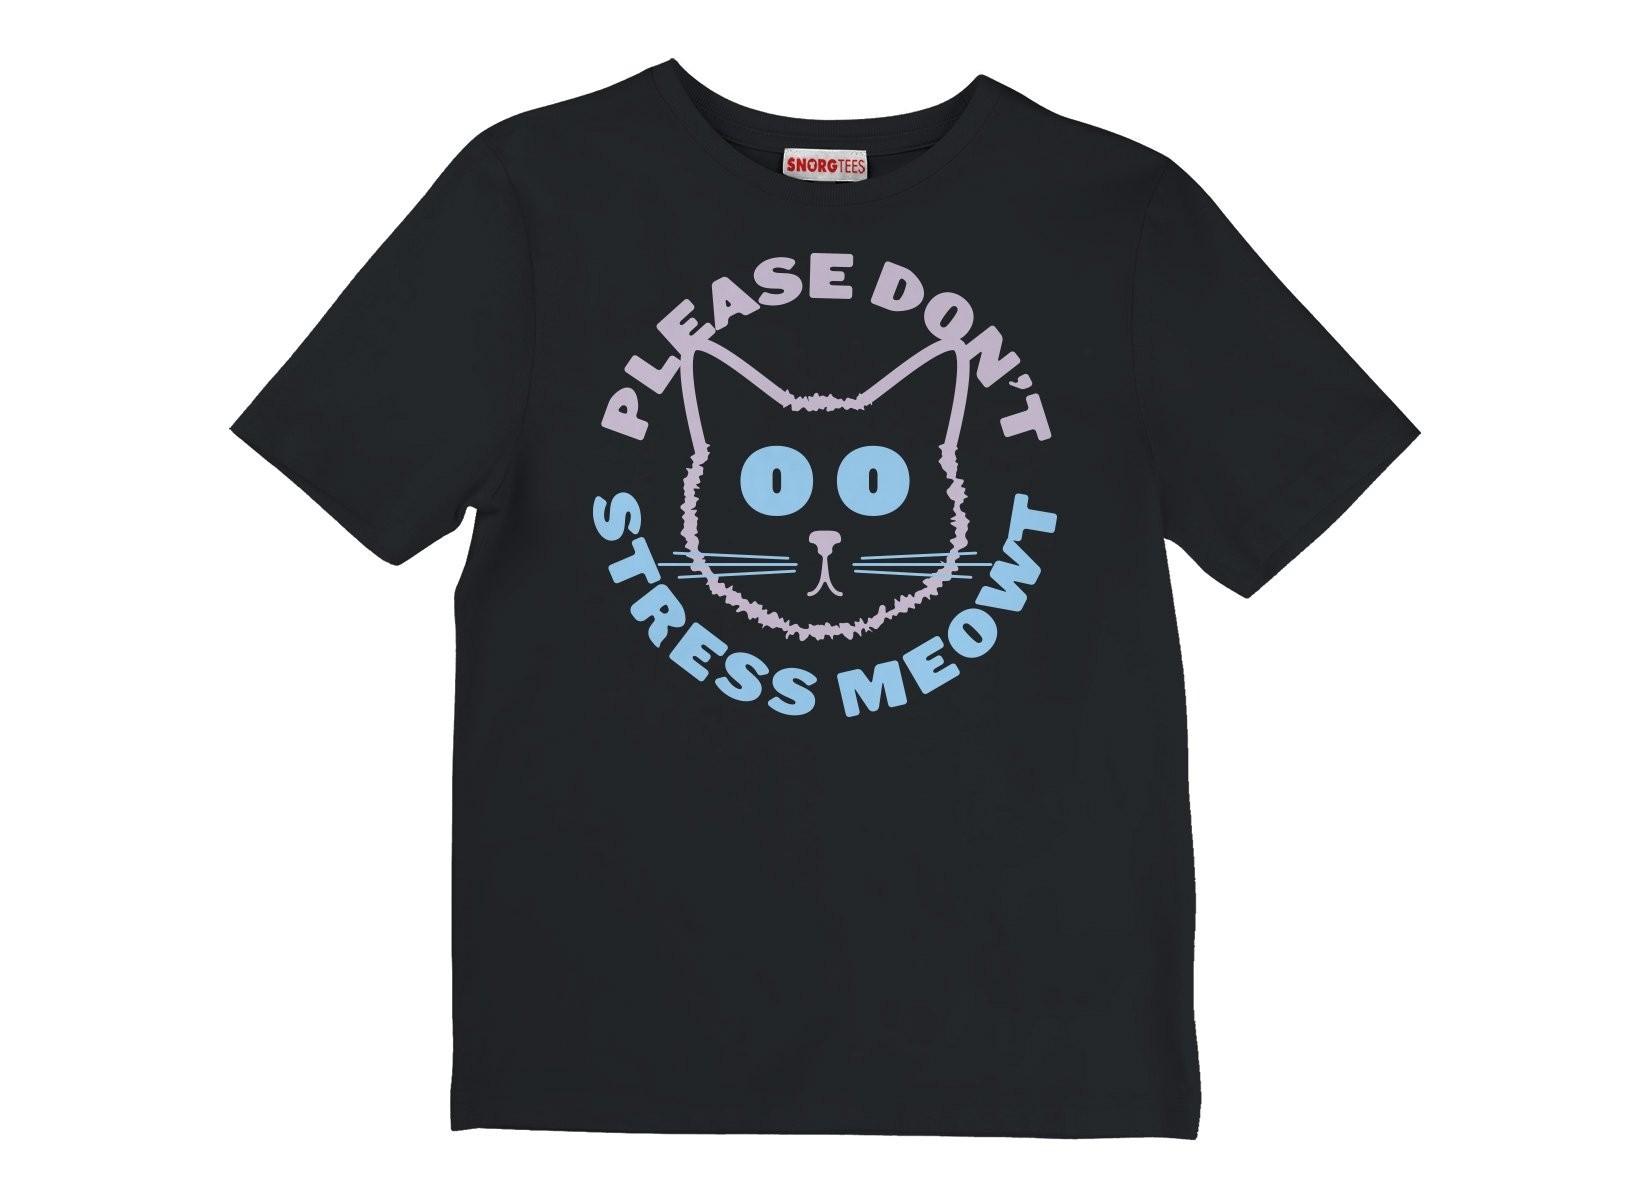 Please Don't Stress Meowt on Kids T-Shirt